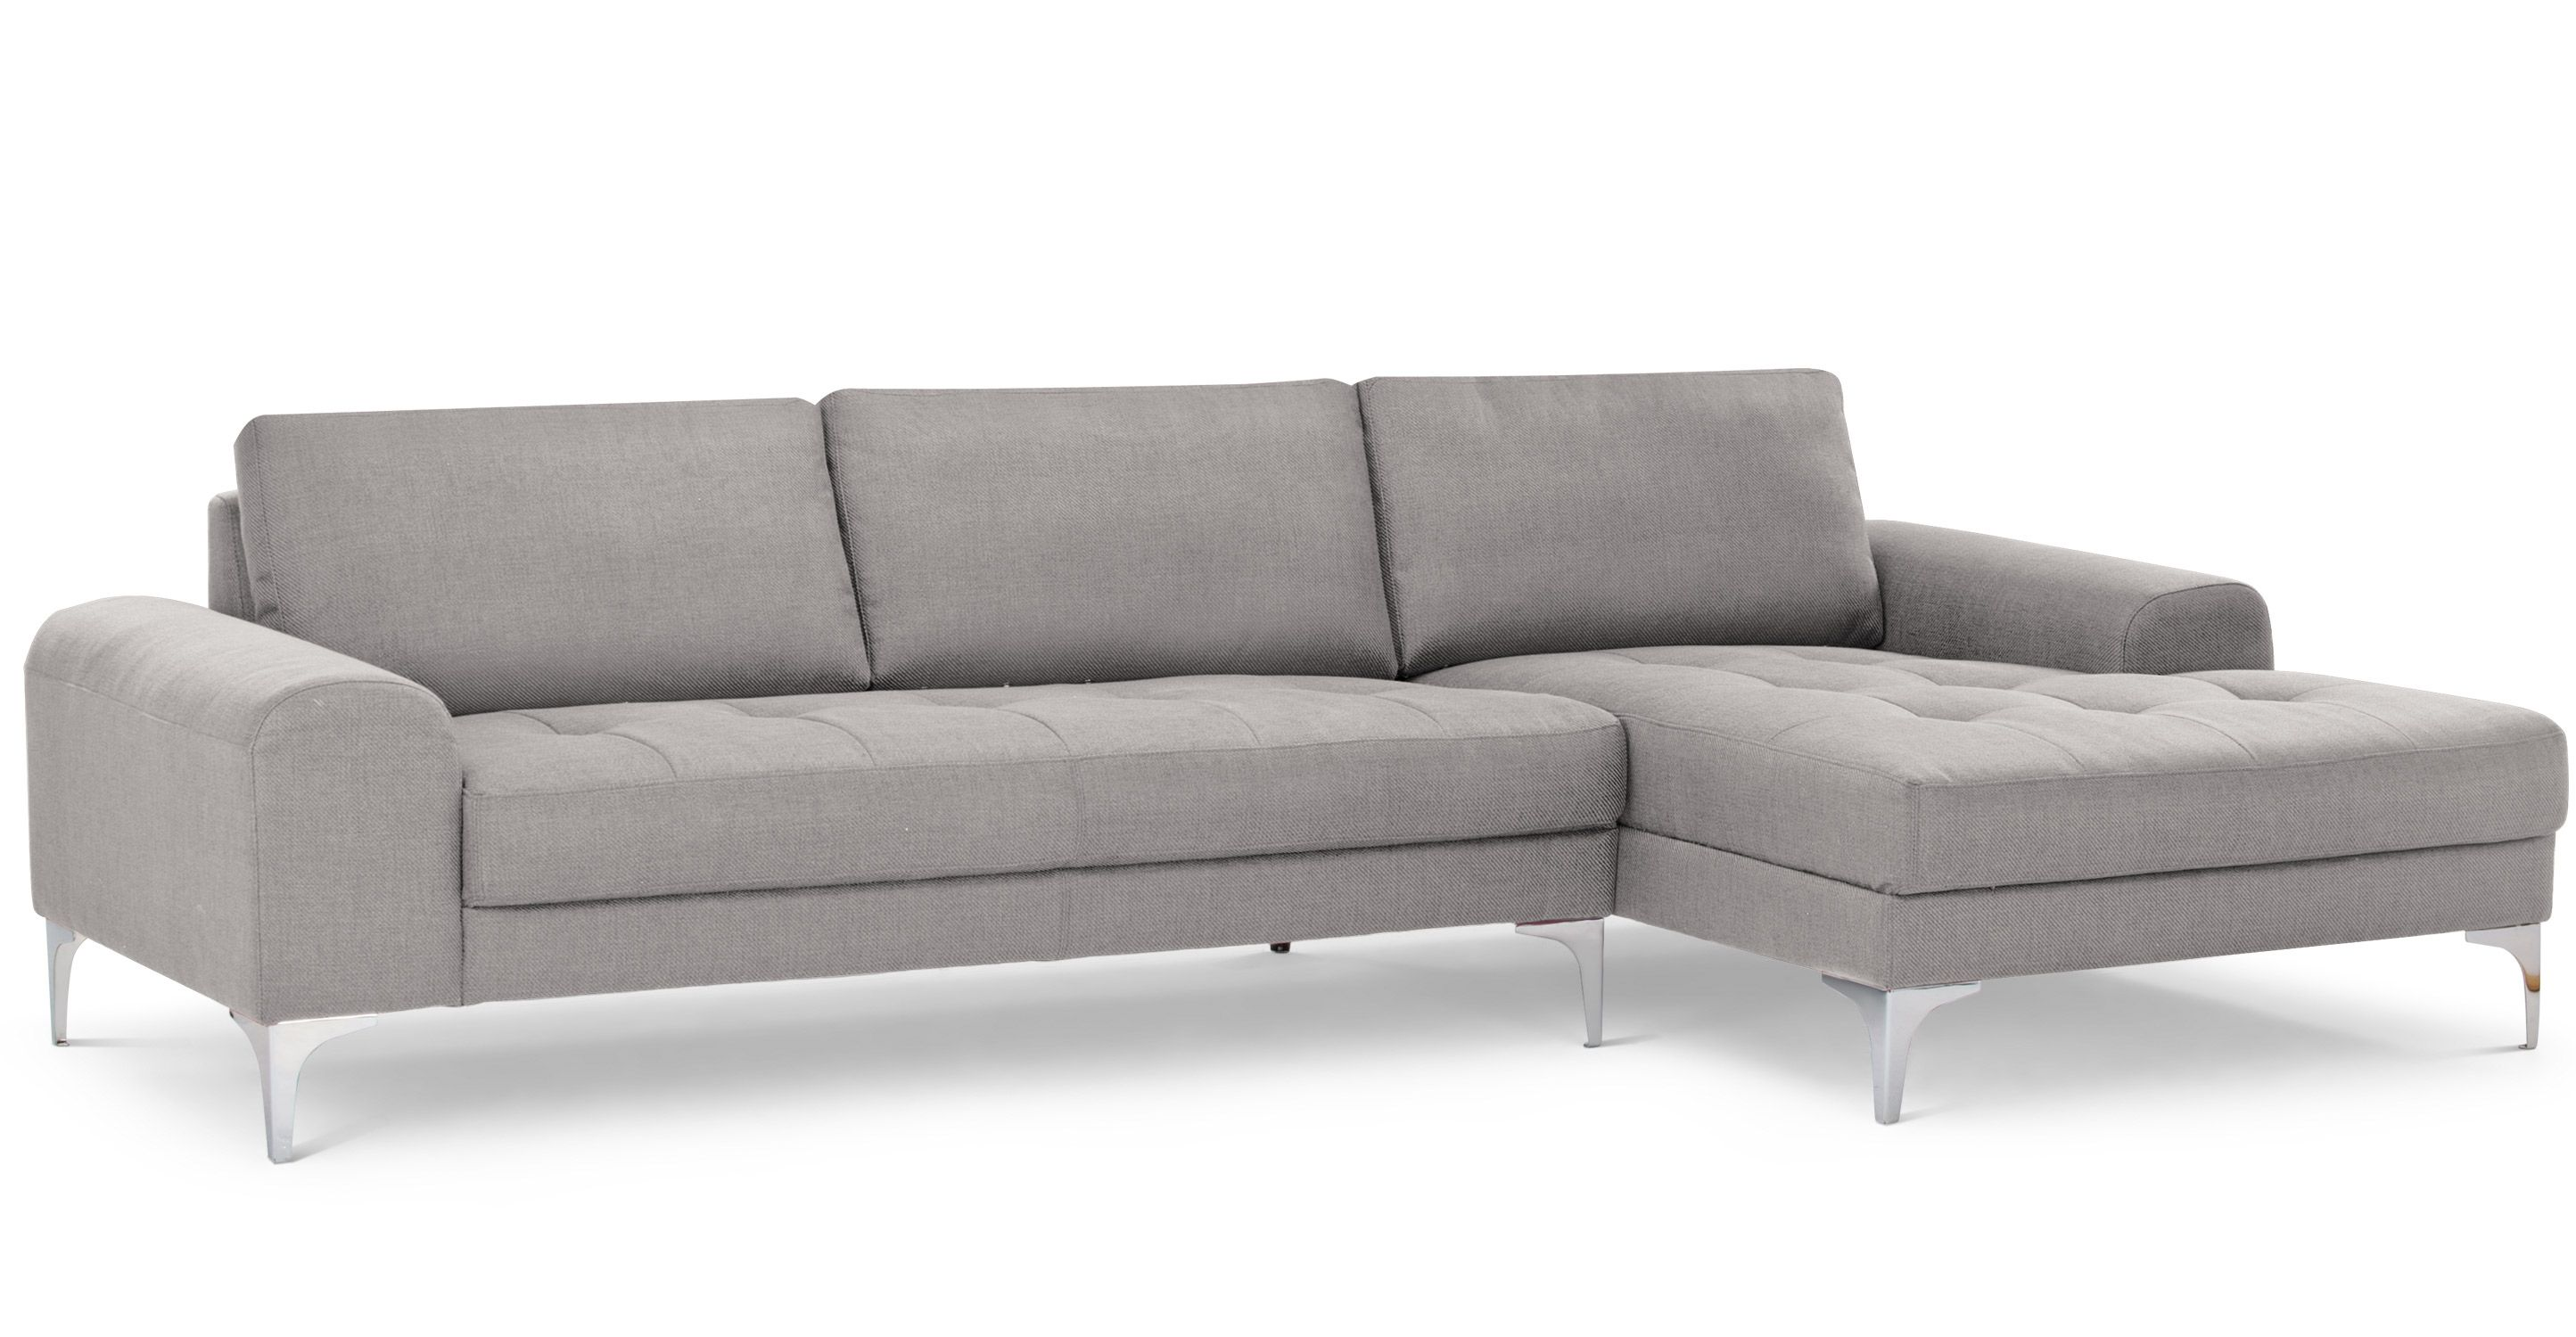 Vittorio Right Hand Facing Chaise End Corner Sofa Pearl Grey Canape Angle Canape D Angle Cuir Canape Angle Droit